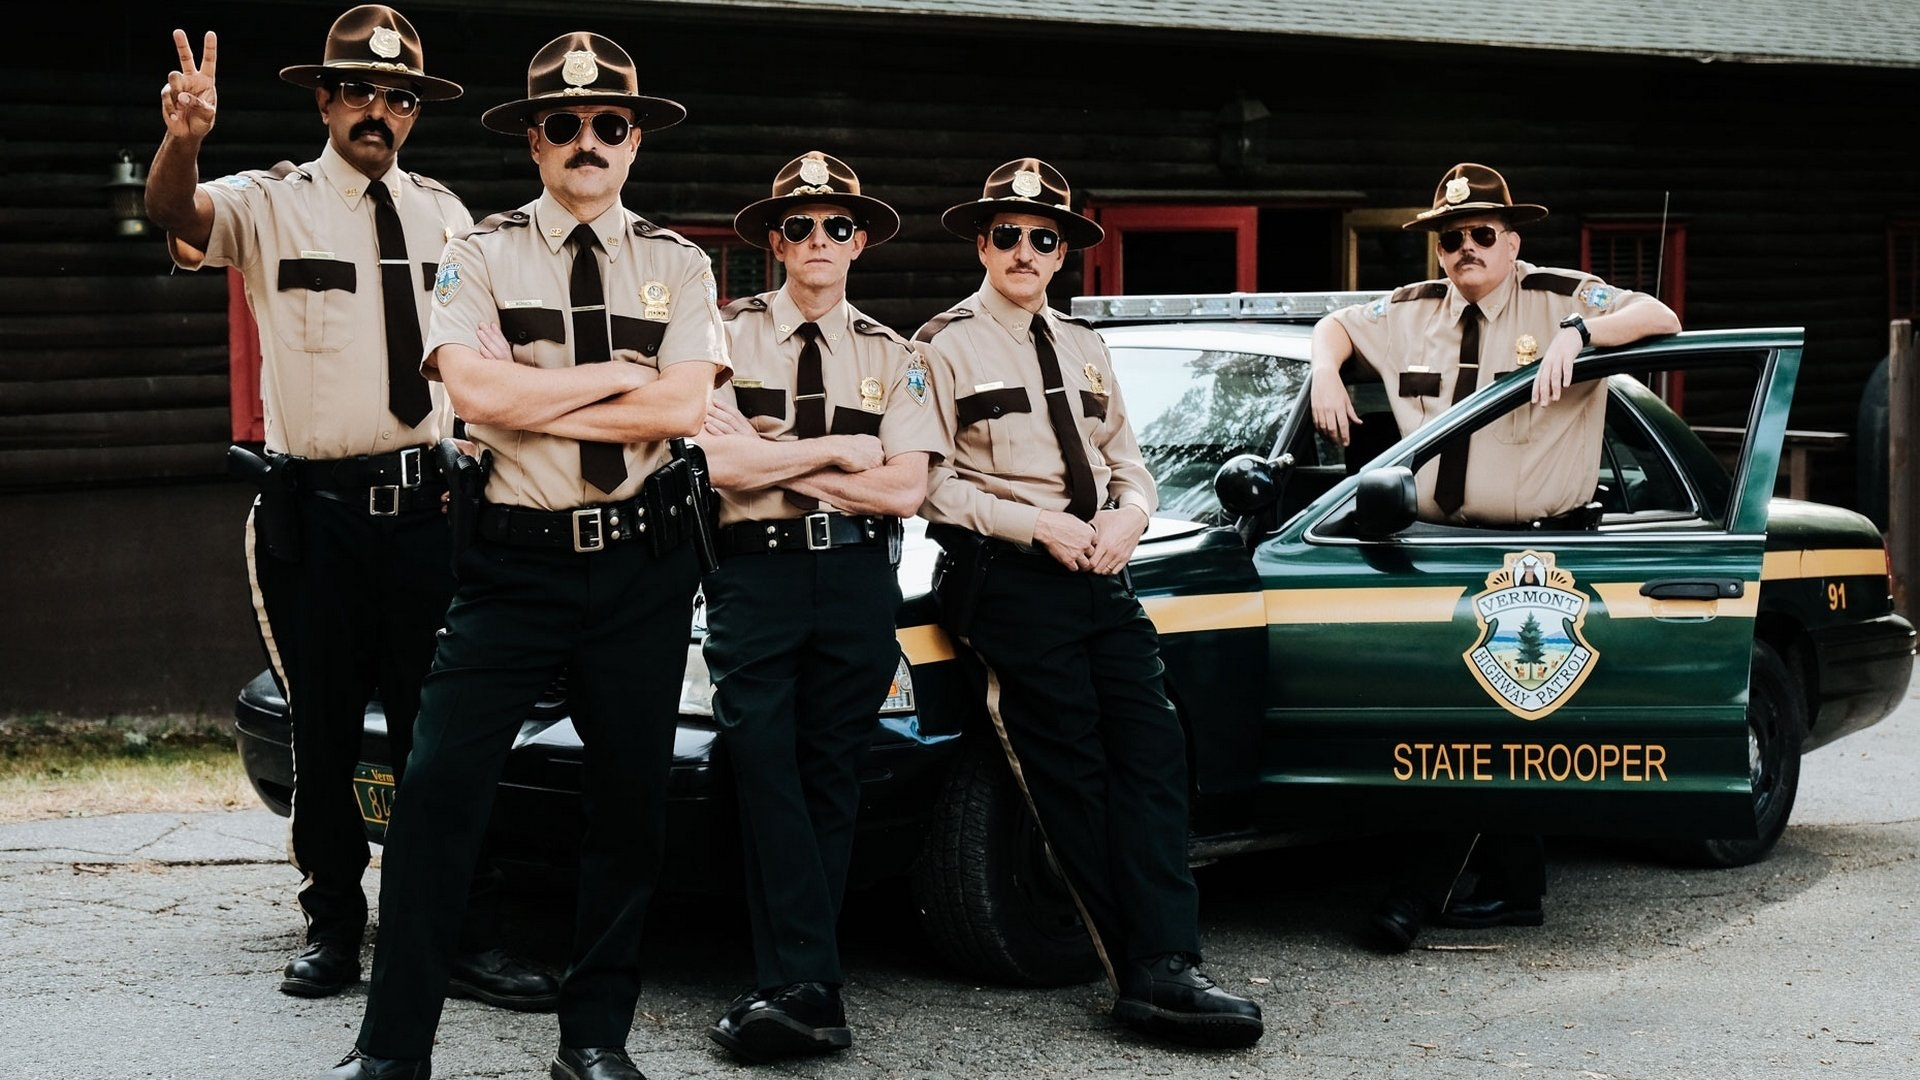 Super Troopers 2 Soundtrack